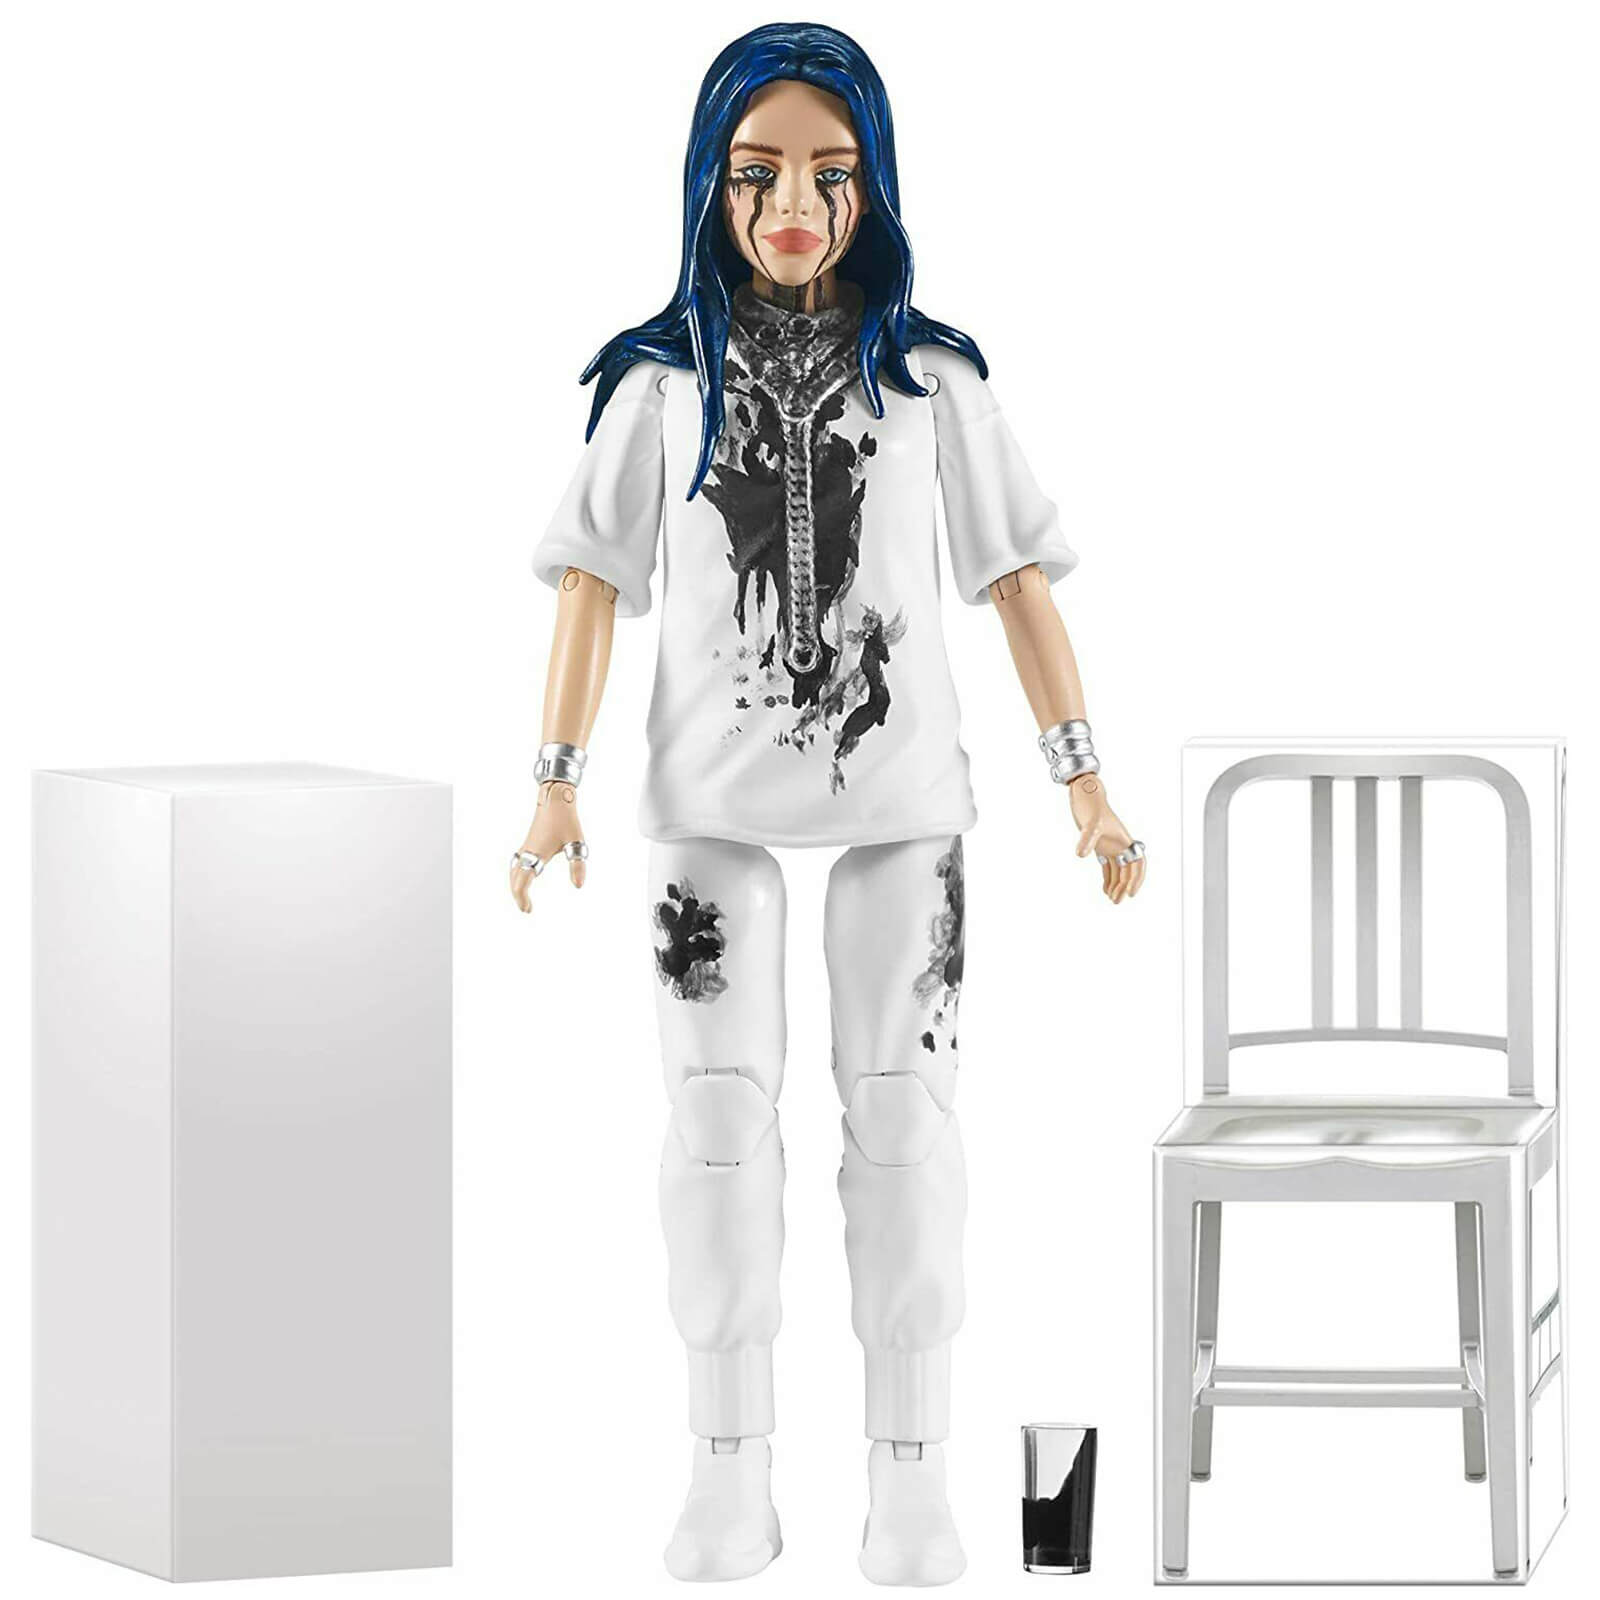 Bandai Billie Eilish 6  Figure (When the Party is Over)